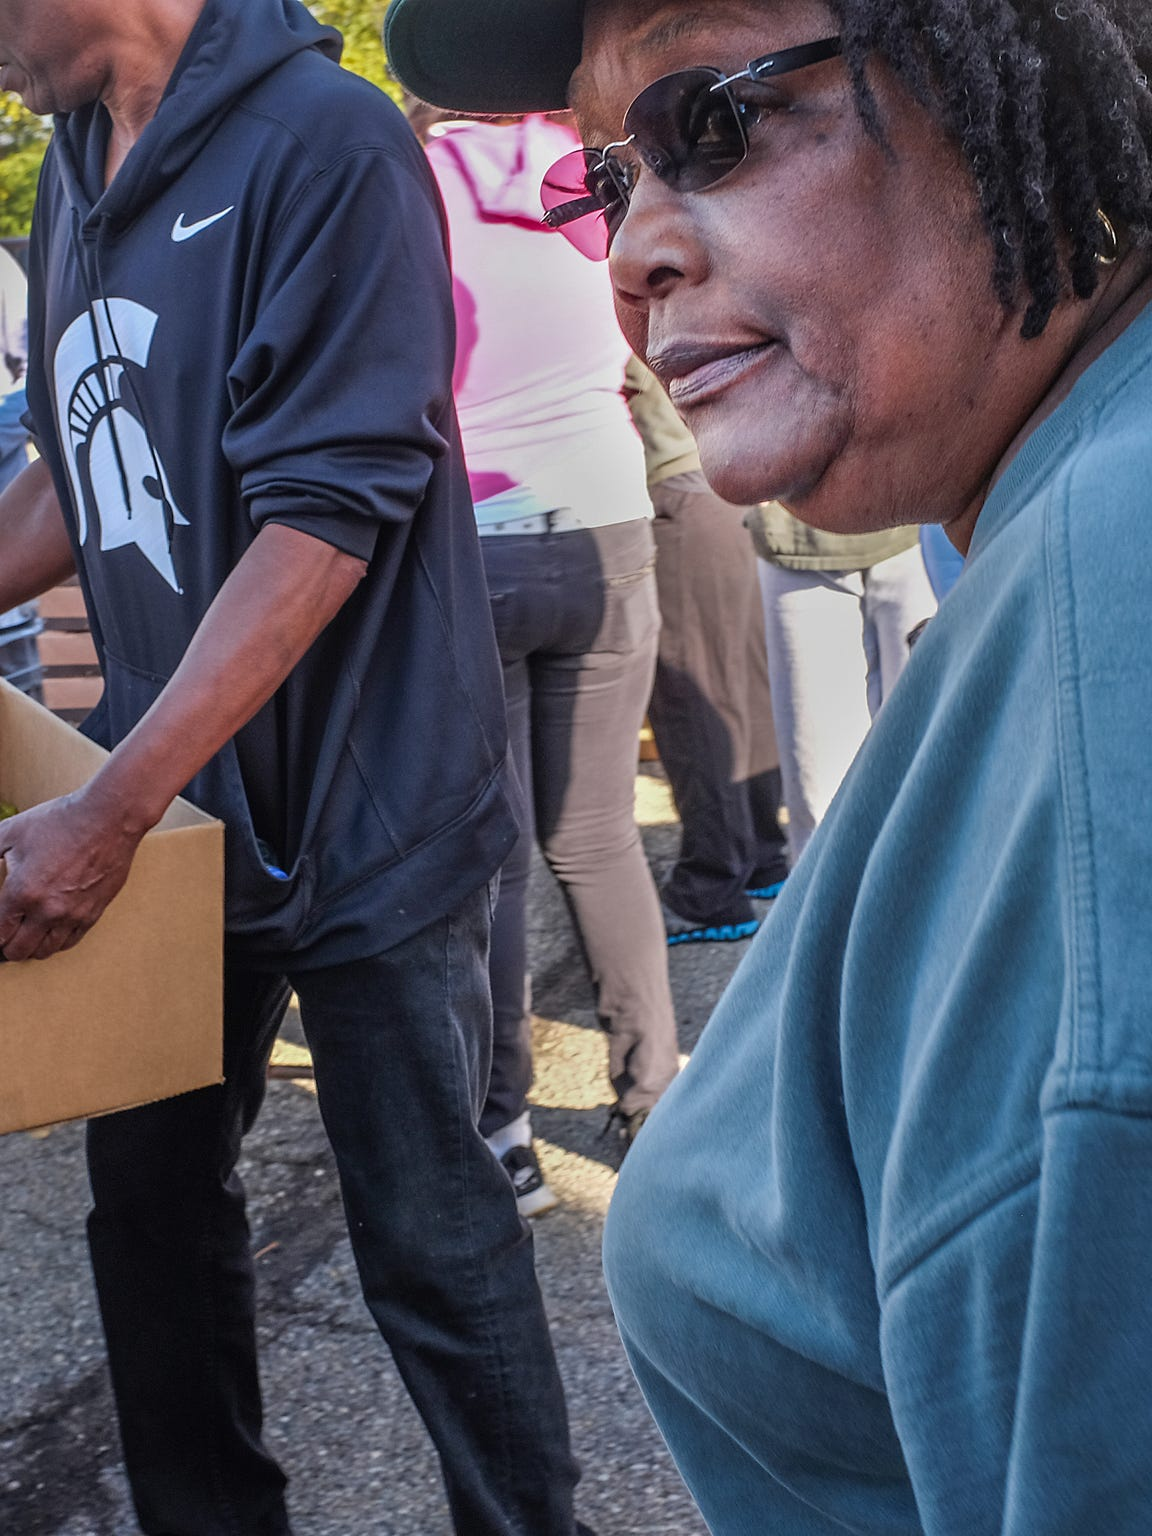 Joan Jackson Johnson works at the Mobile Food Pantry,